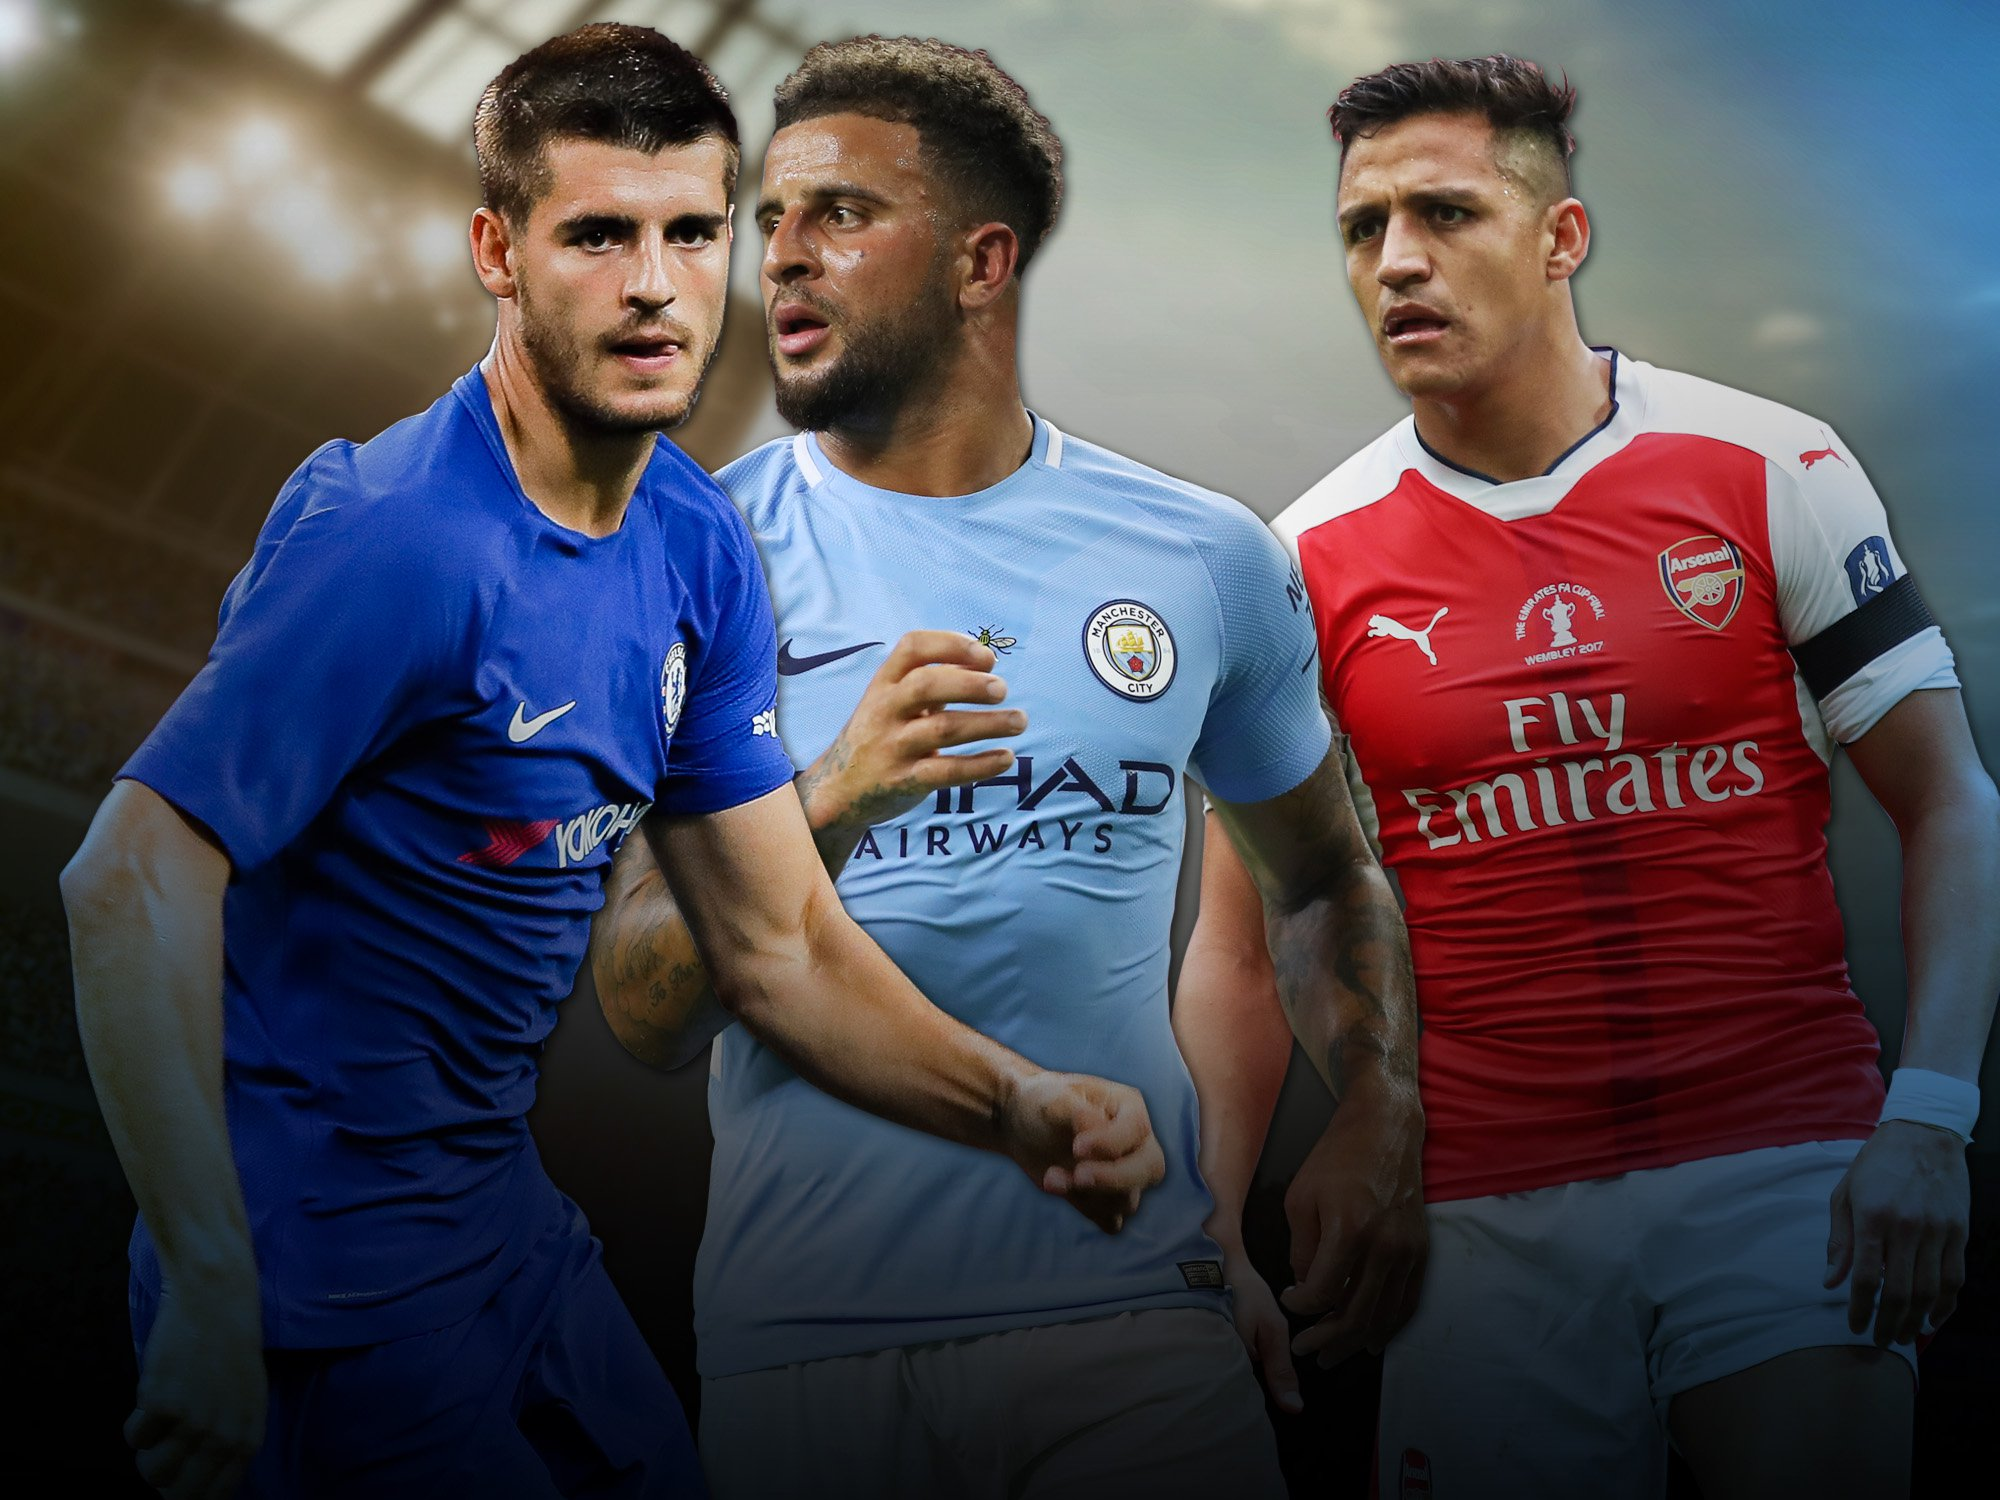 If the transfer window ended now: Arsenal revived, Man City champions & Chelsea dethroned